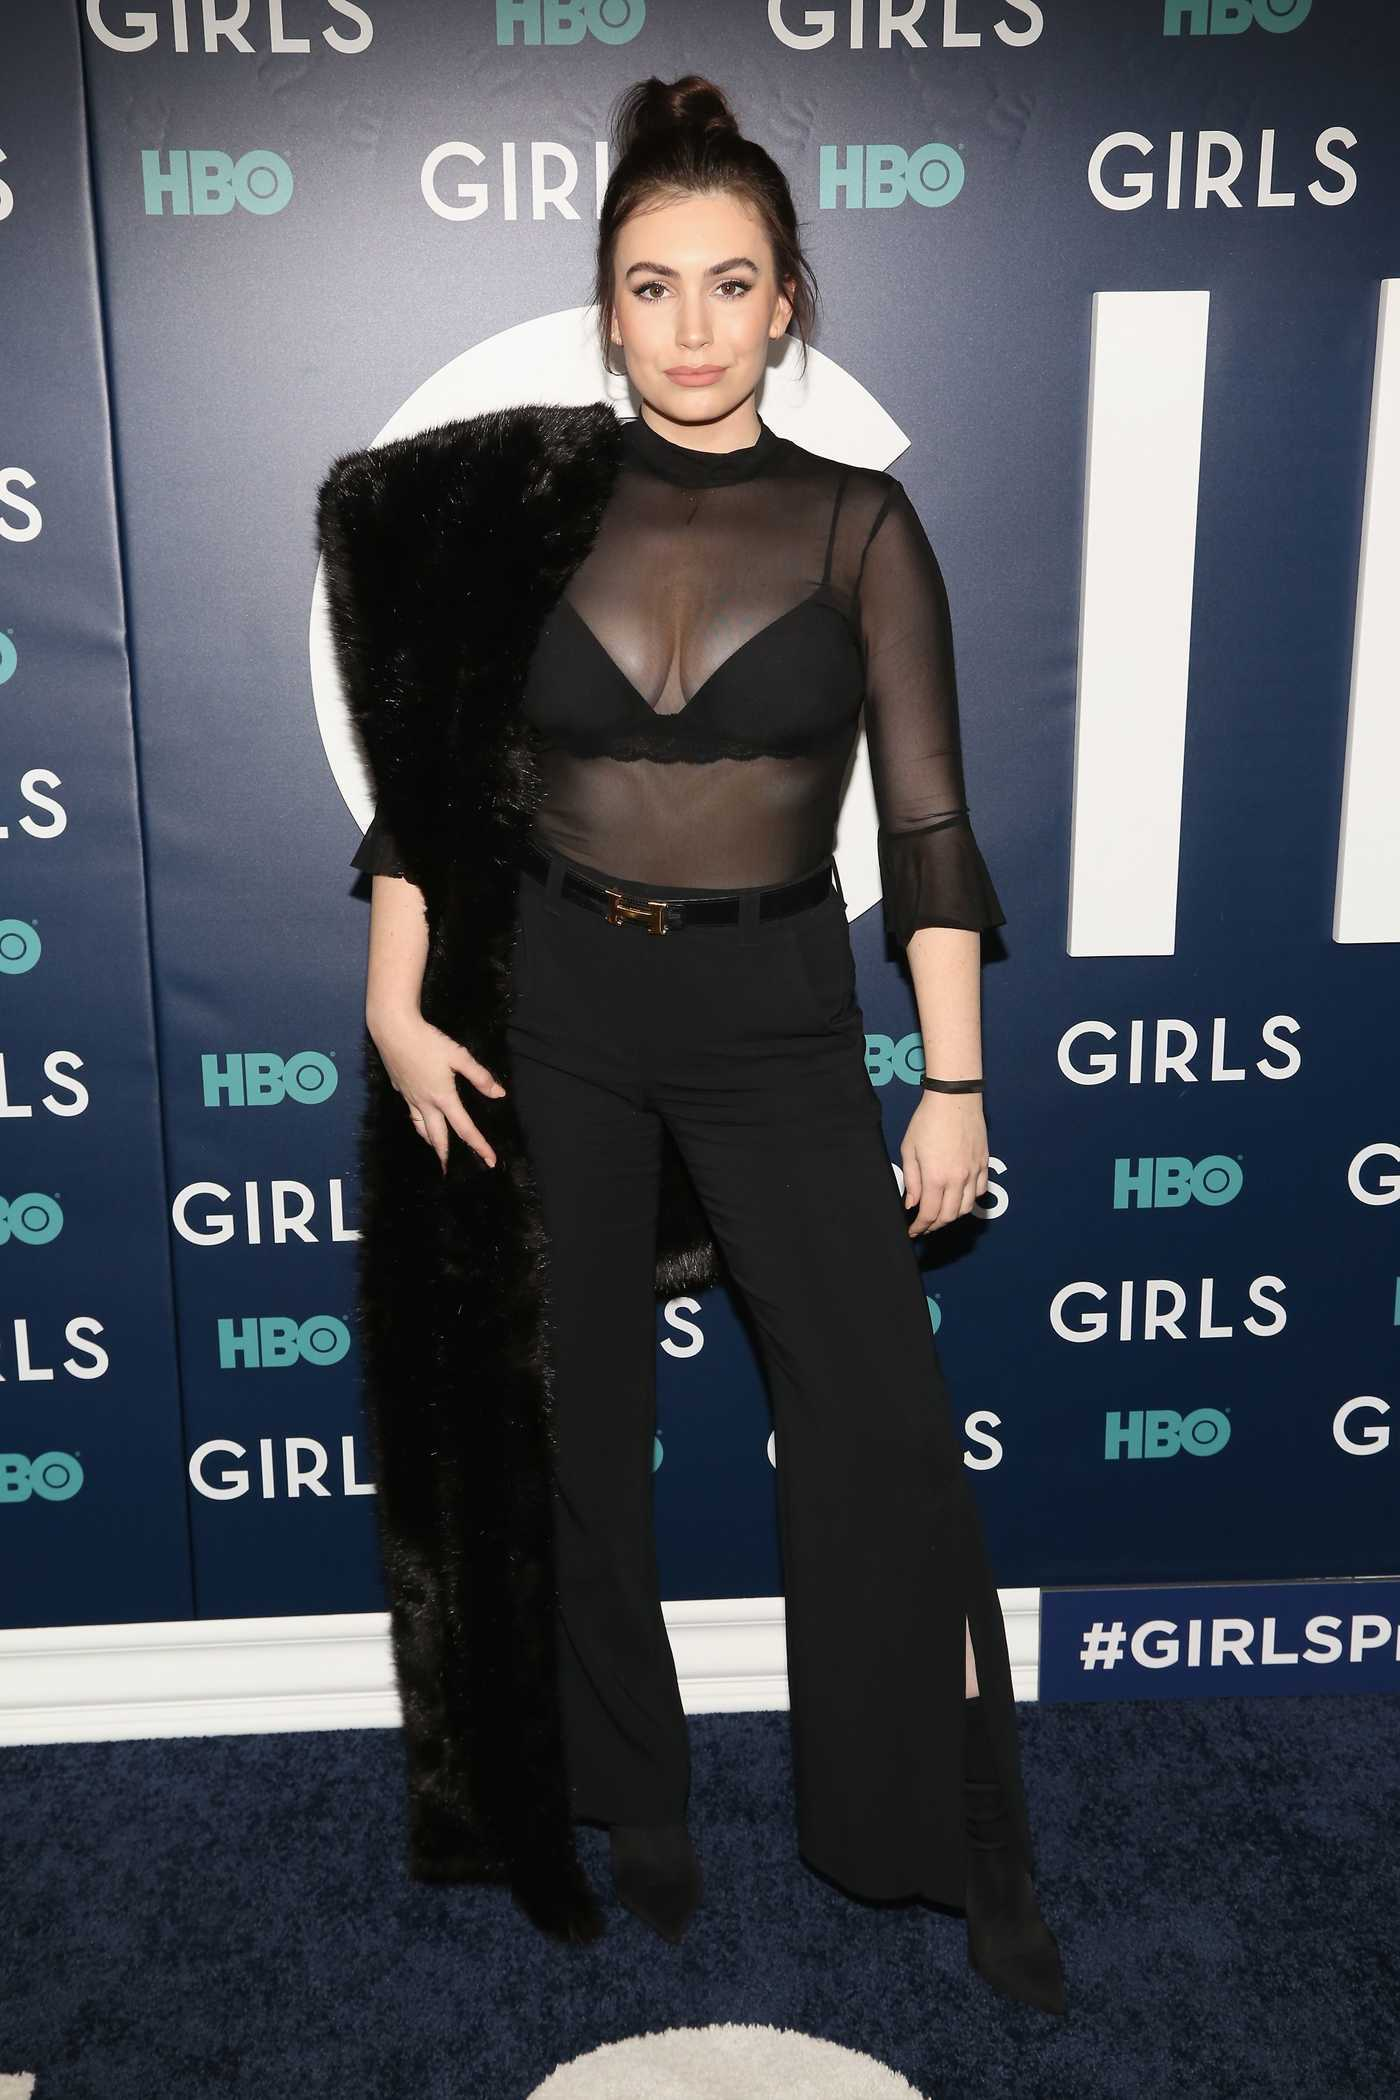 Sophie Simmons at the HBO Girls Season Finale Premiere in New York 02/02/2017